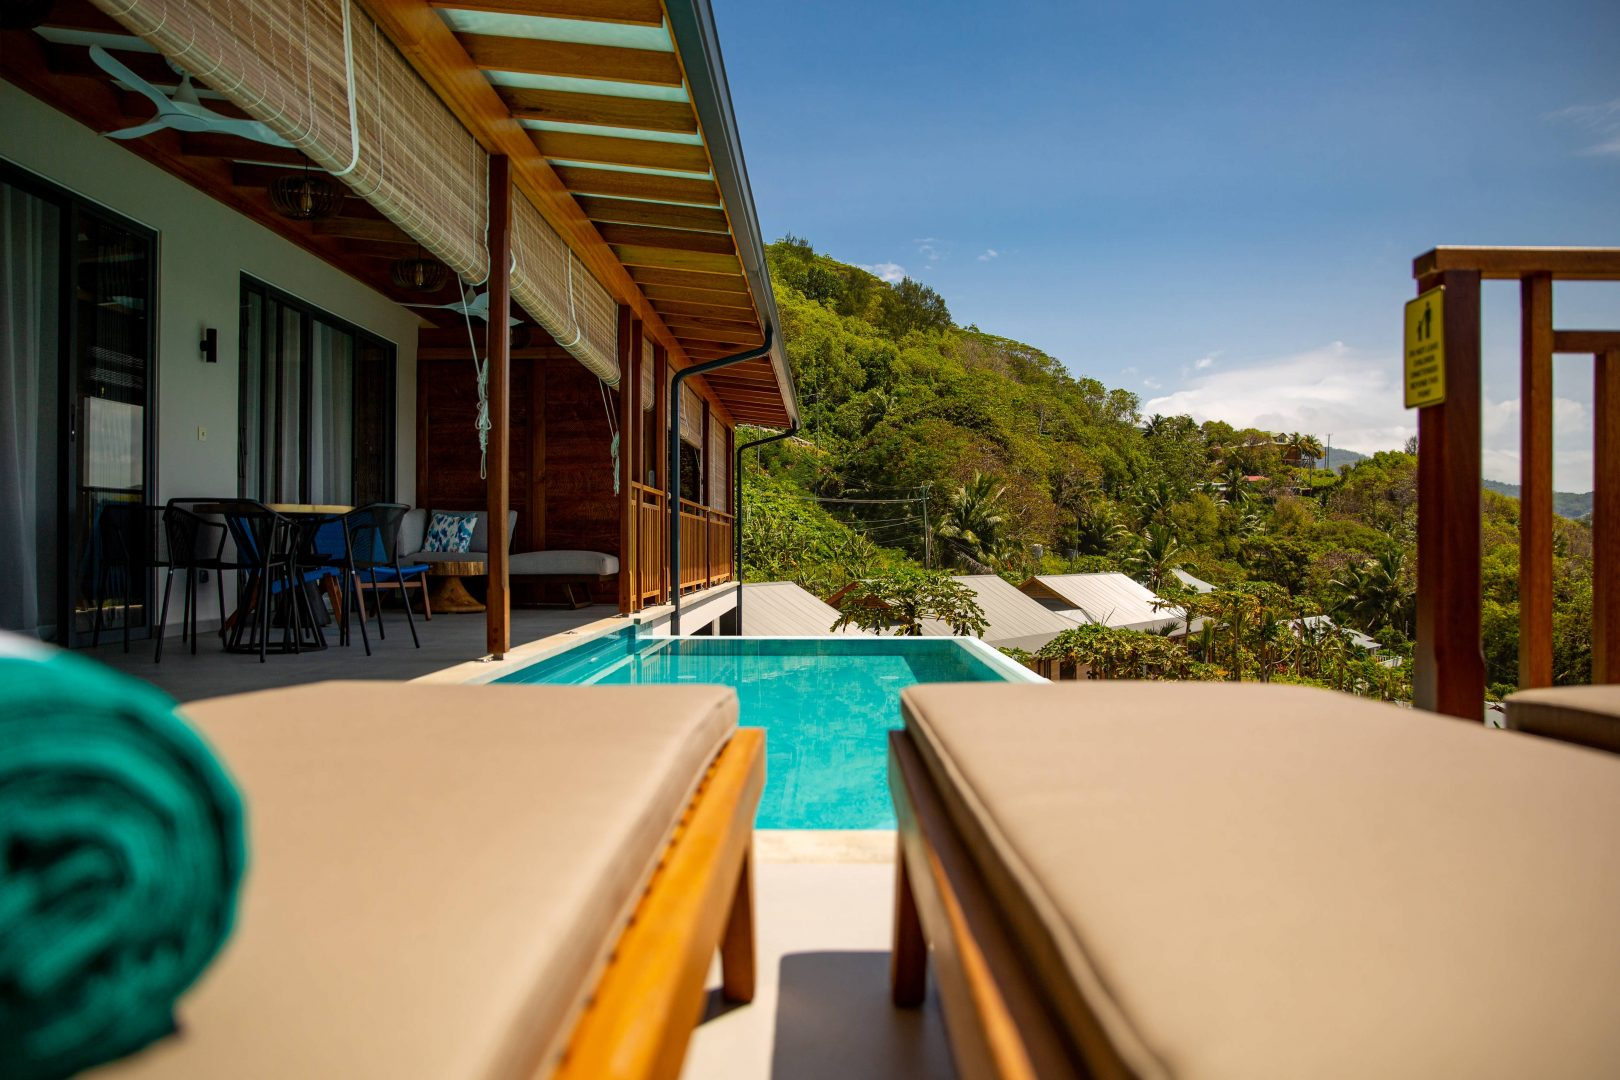 Superior Chalet - pool, terrace view